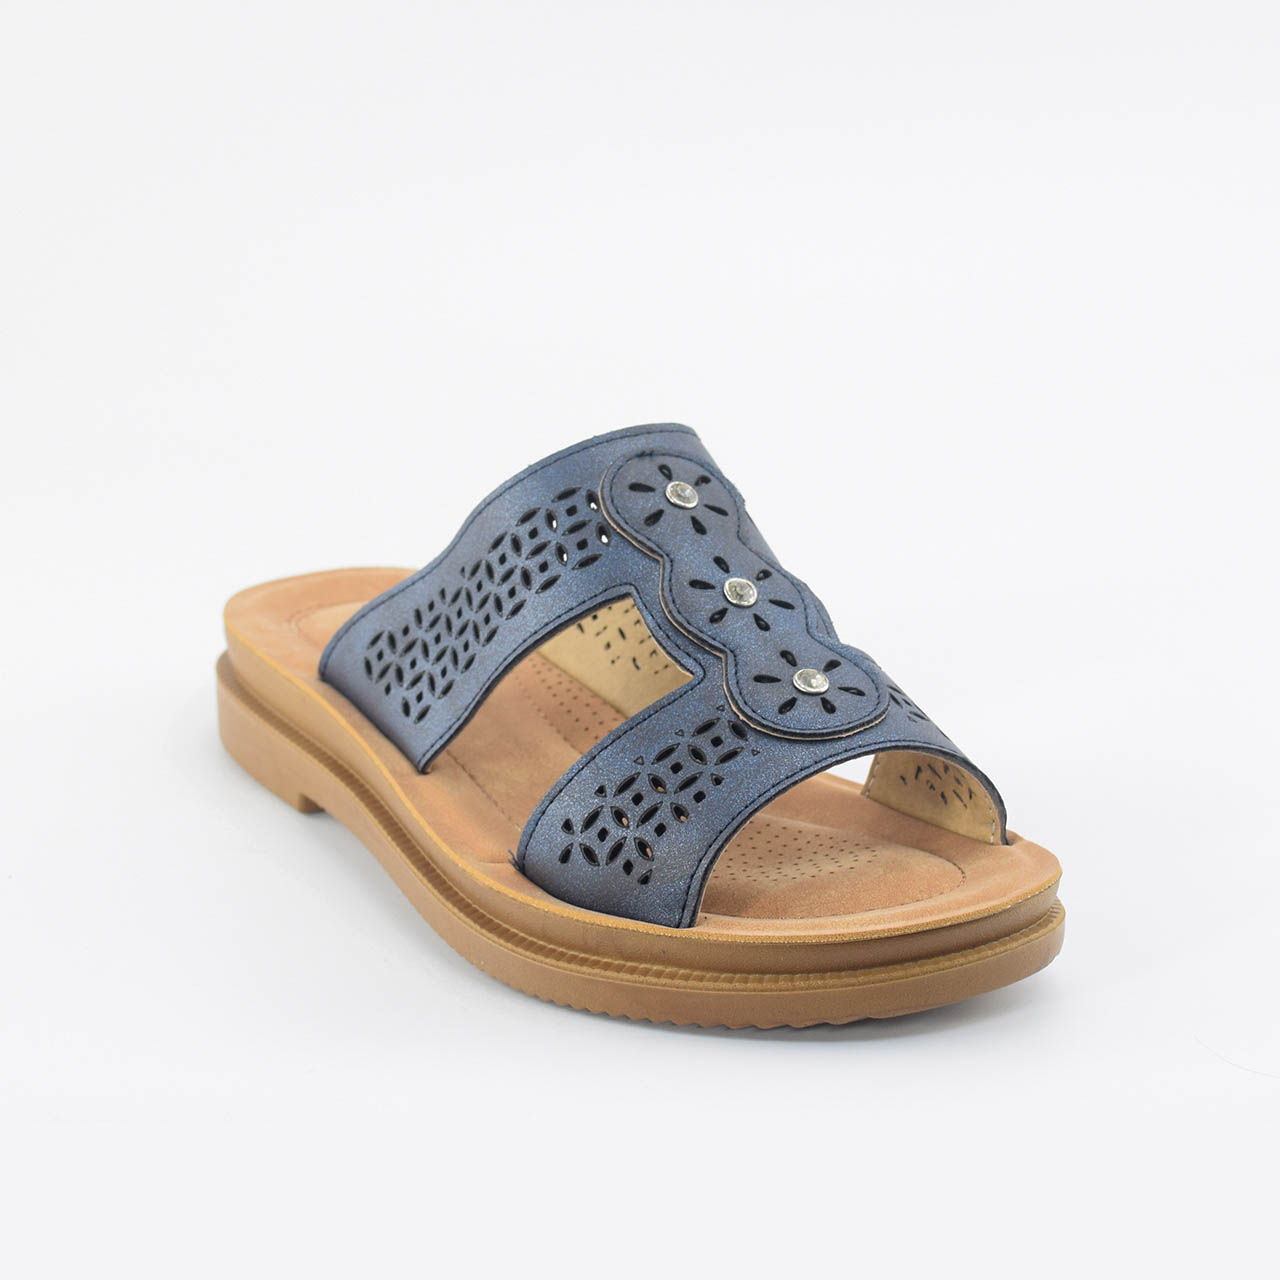 Lacey Sliders in Navy